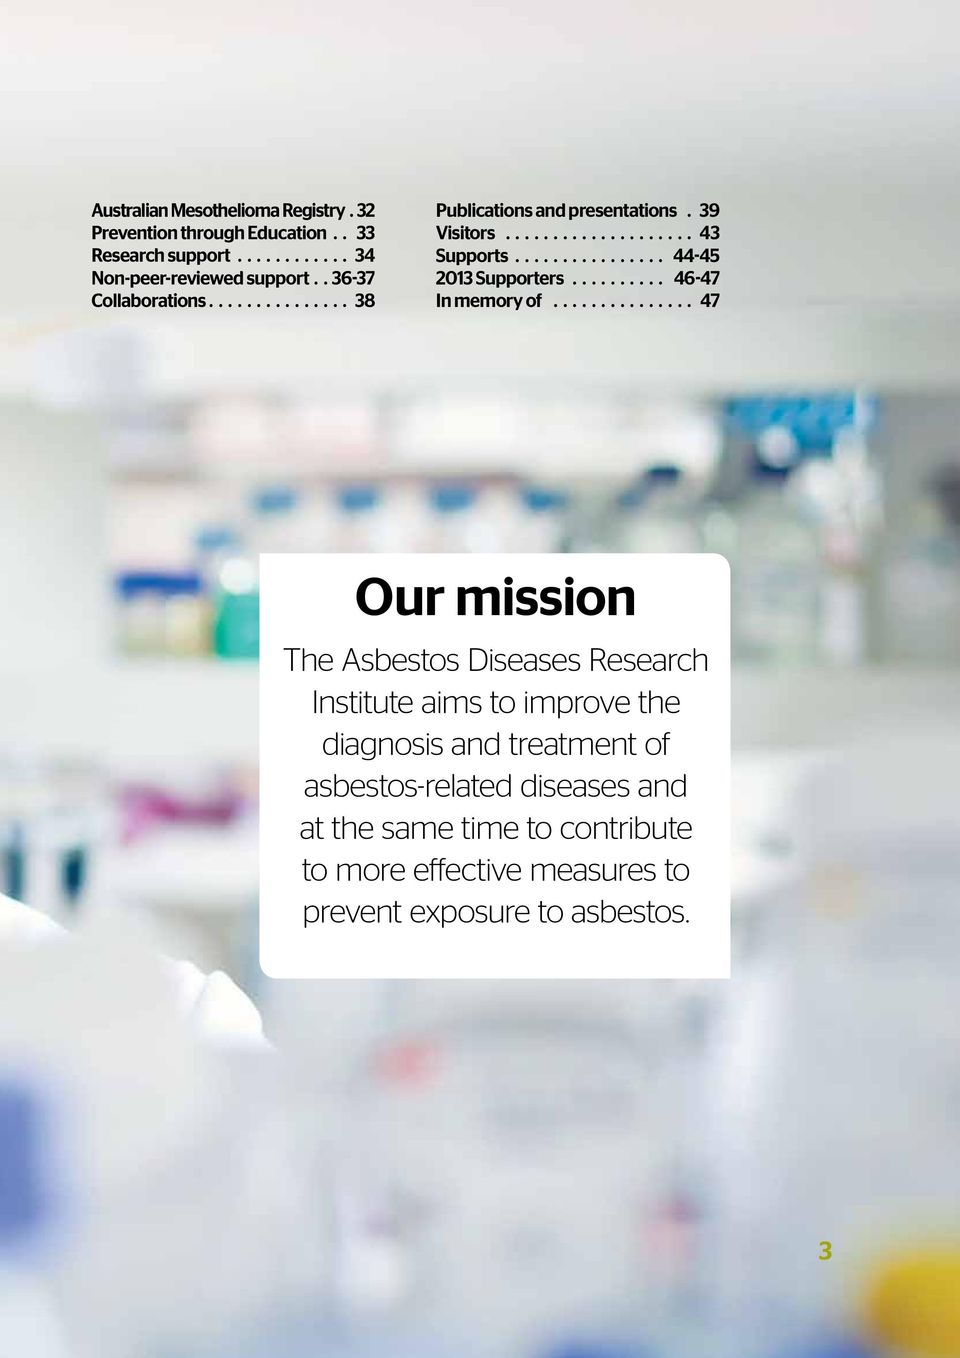 memory of 47 Our mission The Asbestos Diseases Research Institute aims to improve the diagnosis and treatment of